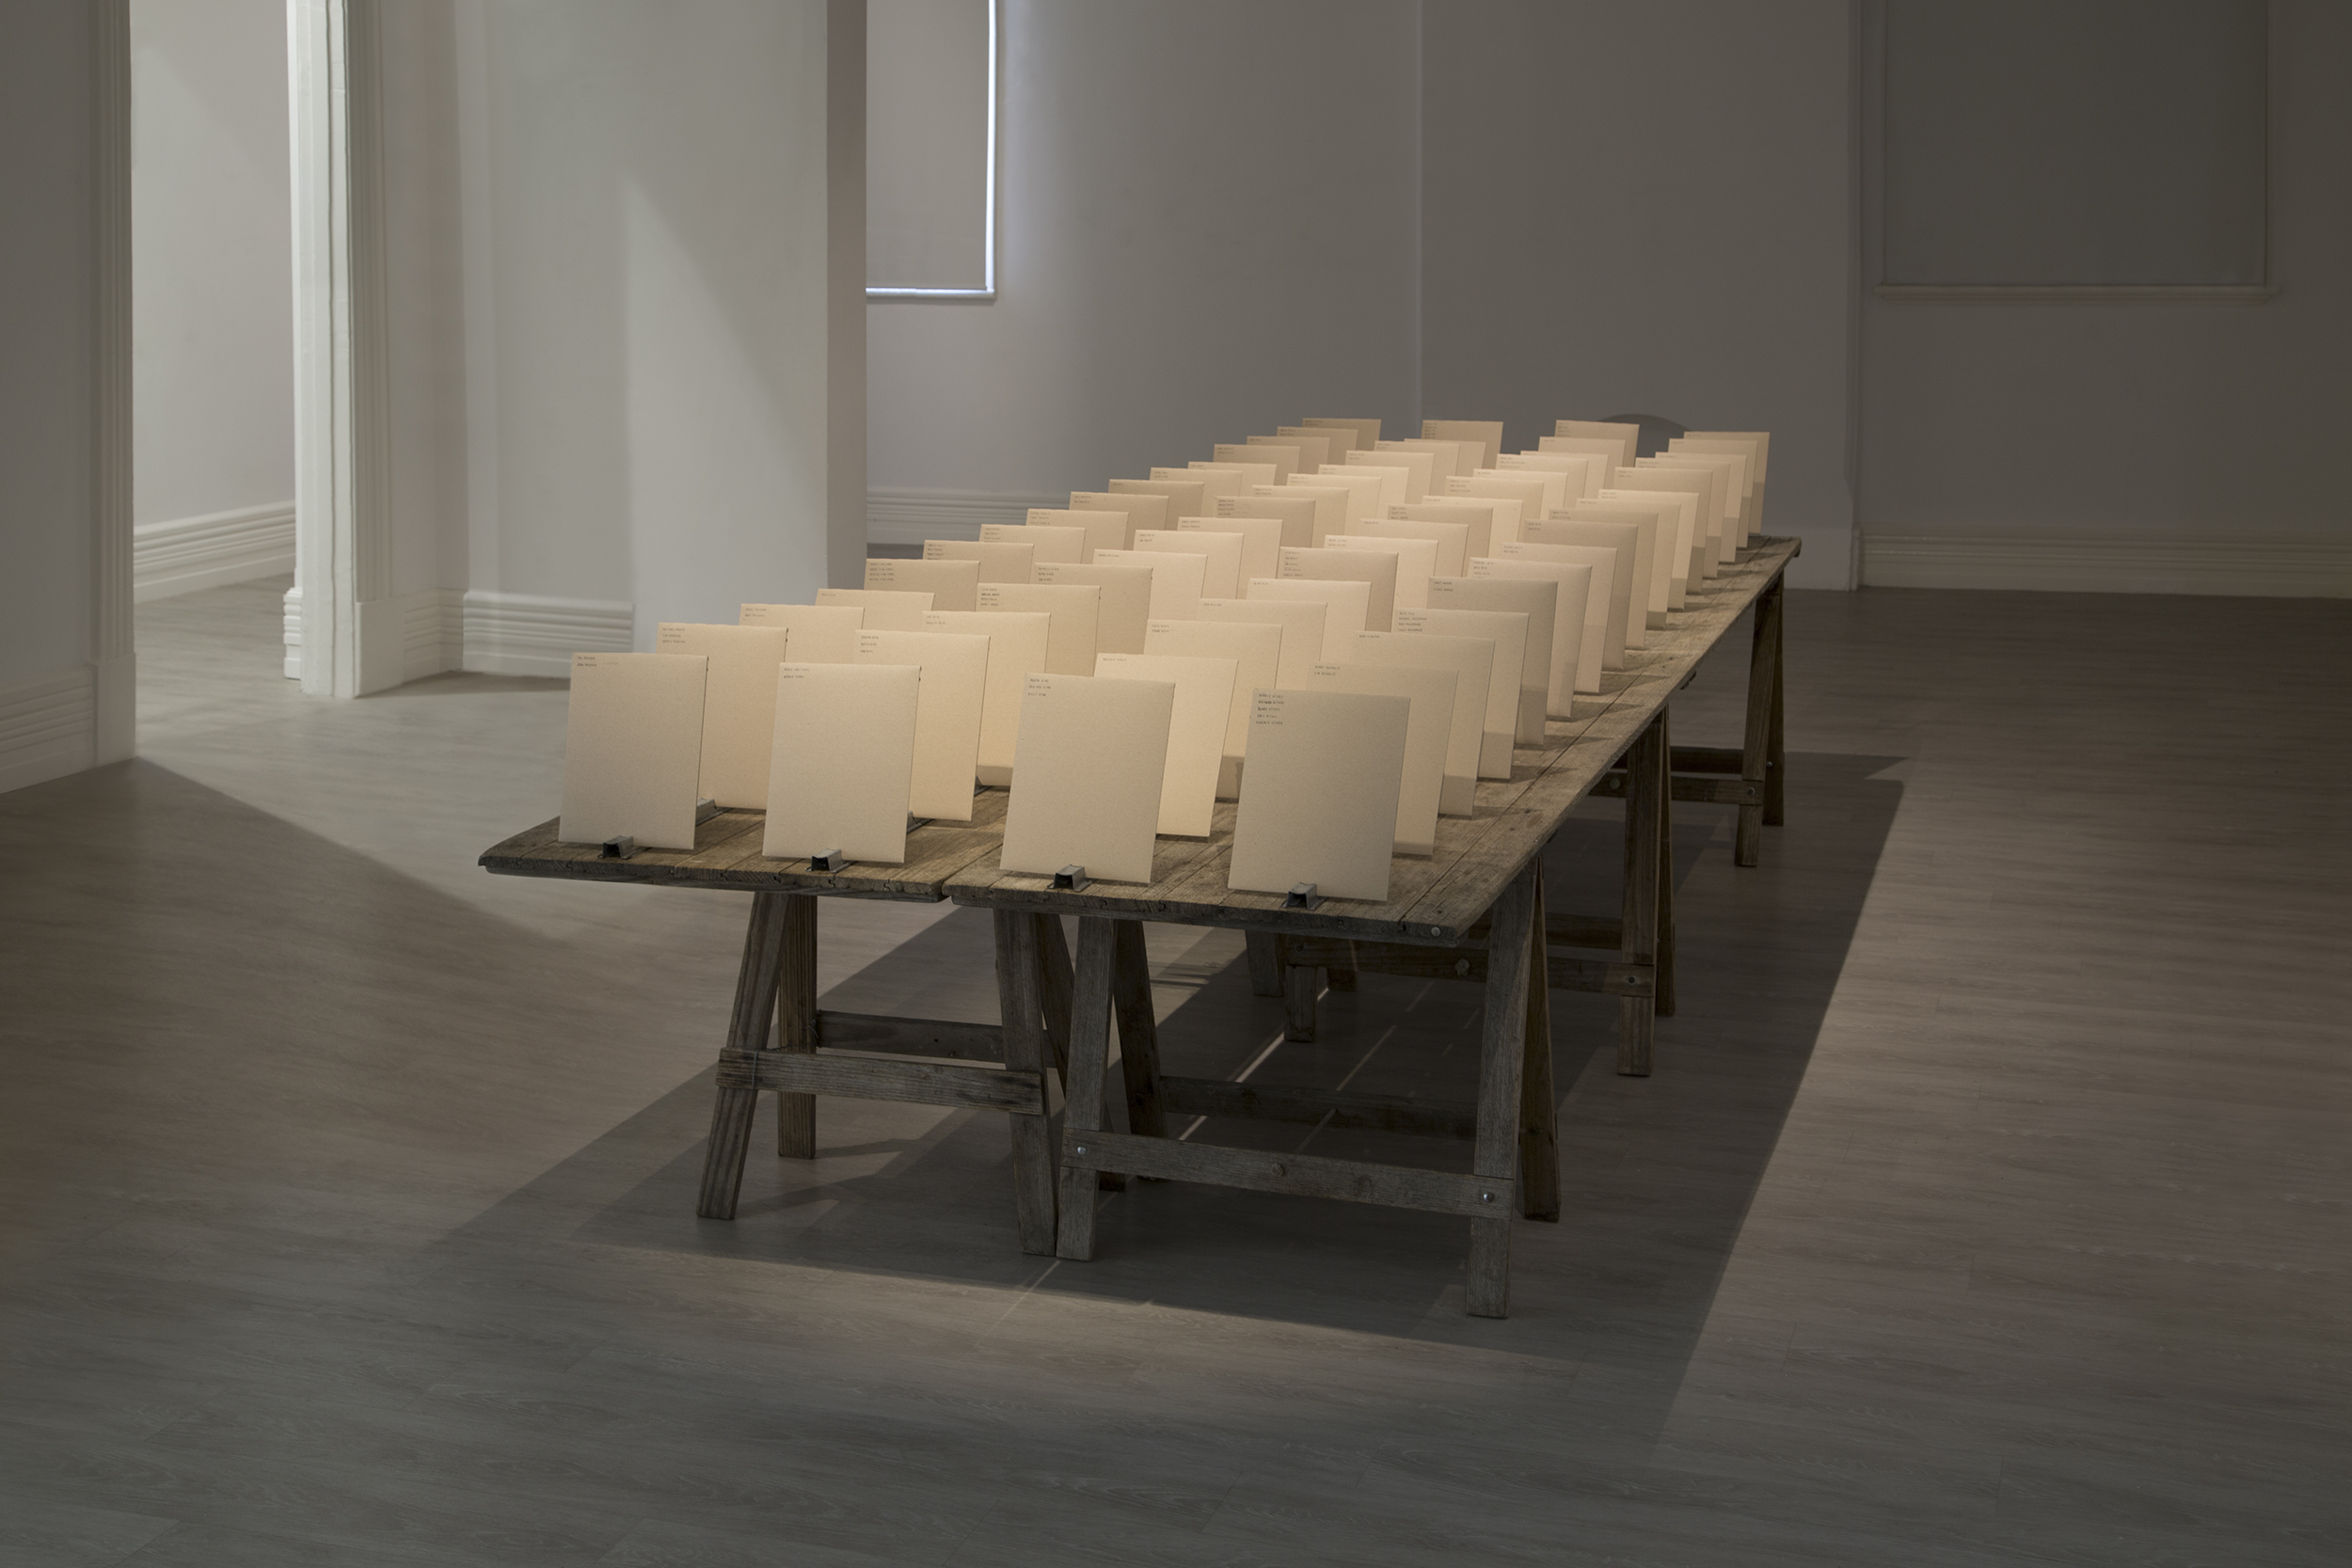 A Continued Conversation  Murray Art Museum Albury January 17 - February 19, 2017 162 archival pigment prints, 64 letters, recycled galvanized steel, 64 envelopes on wood trestle tables